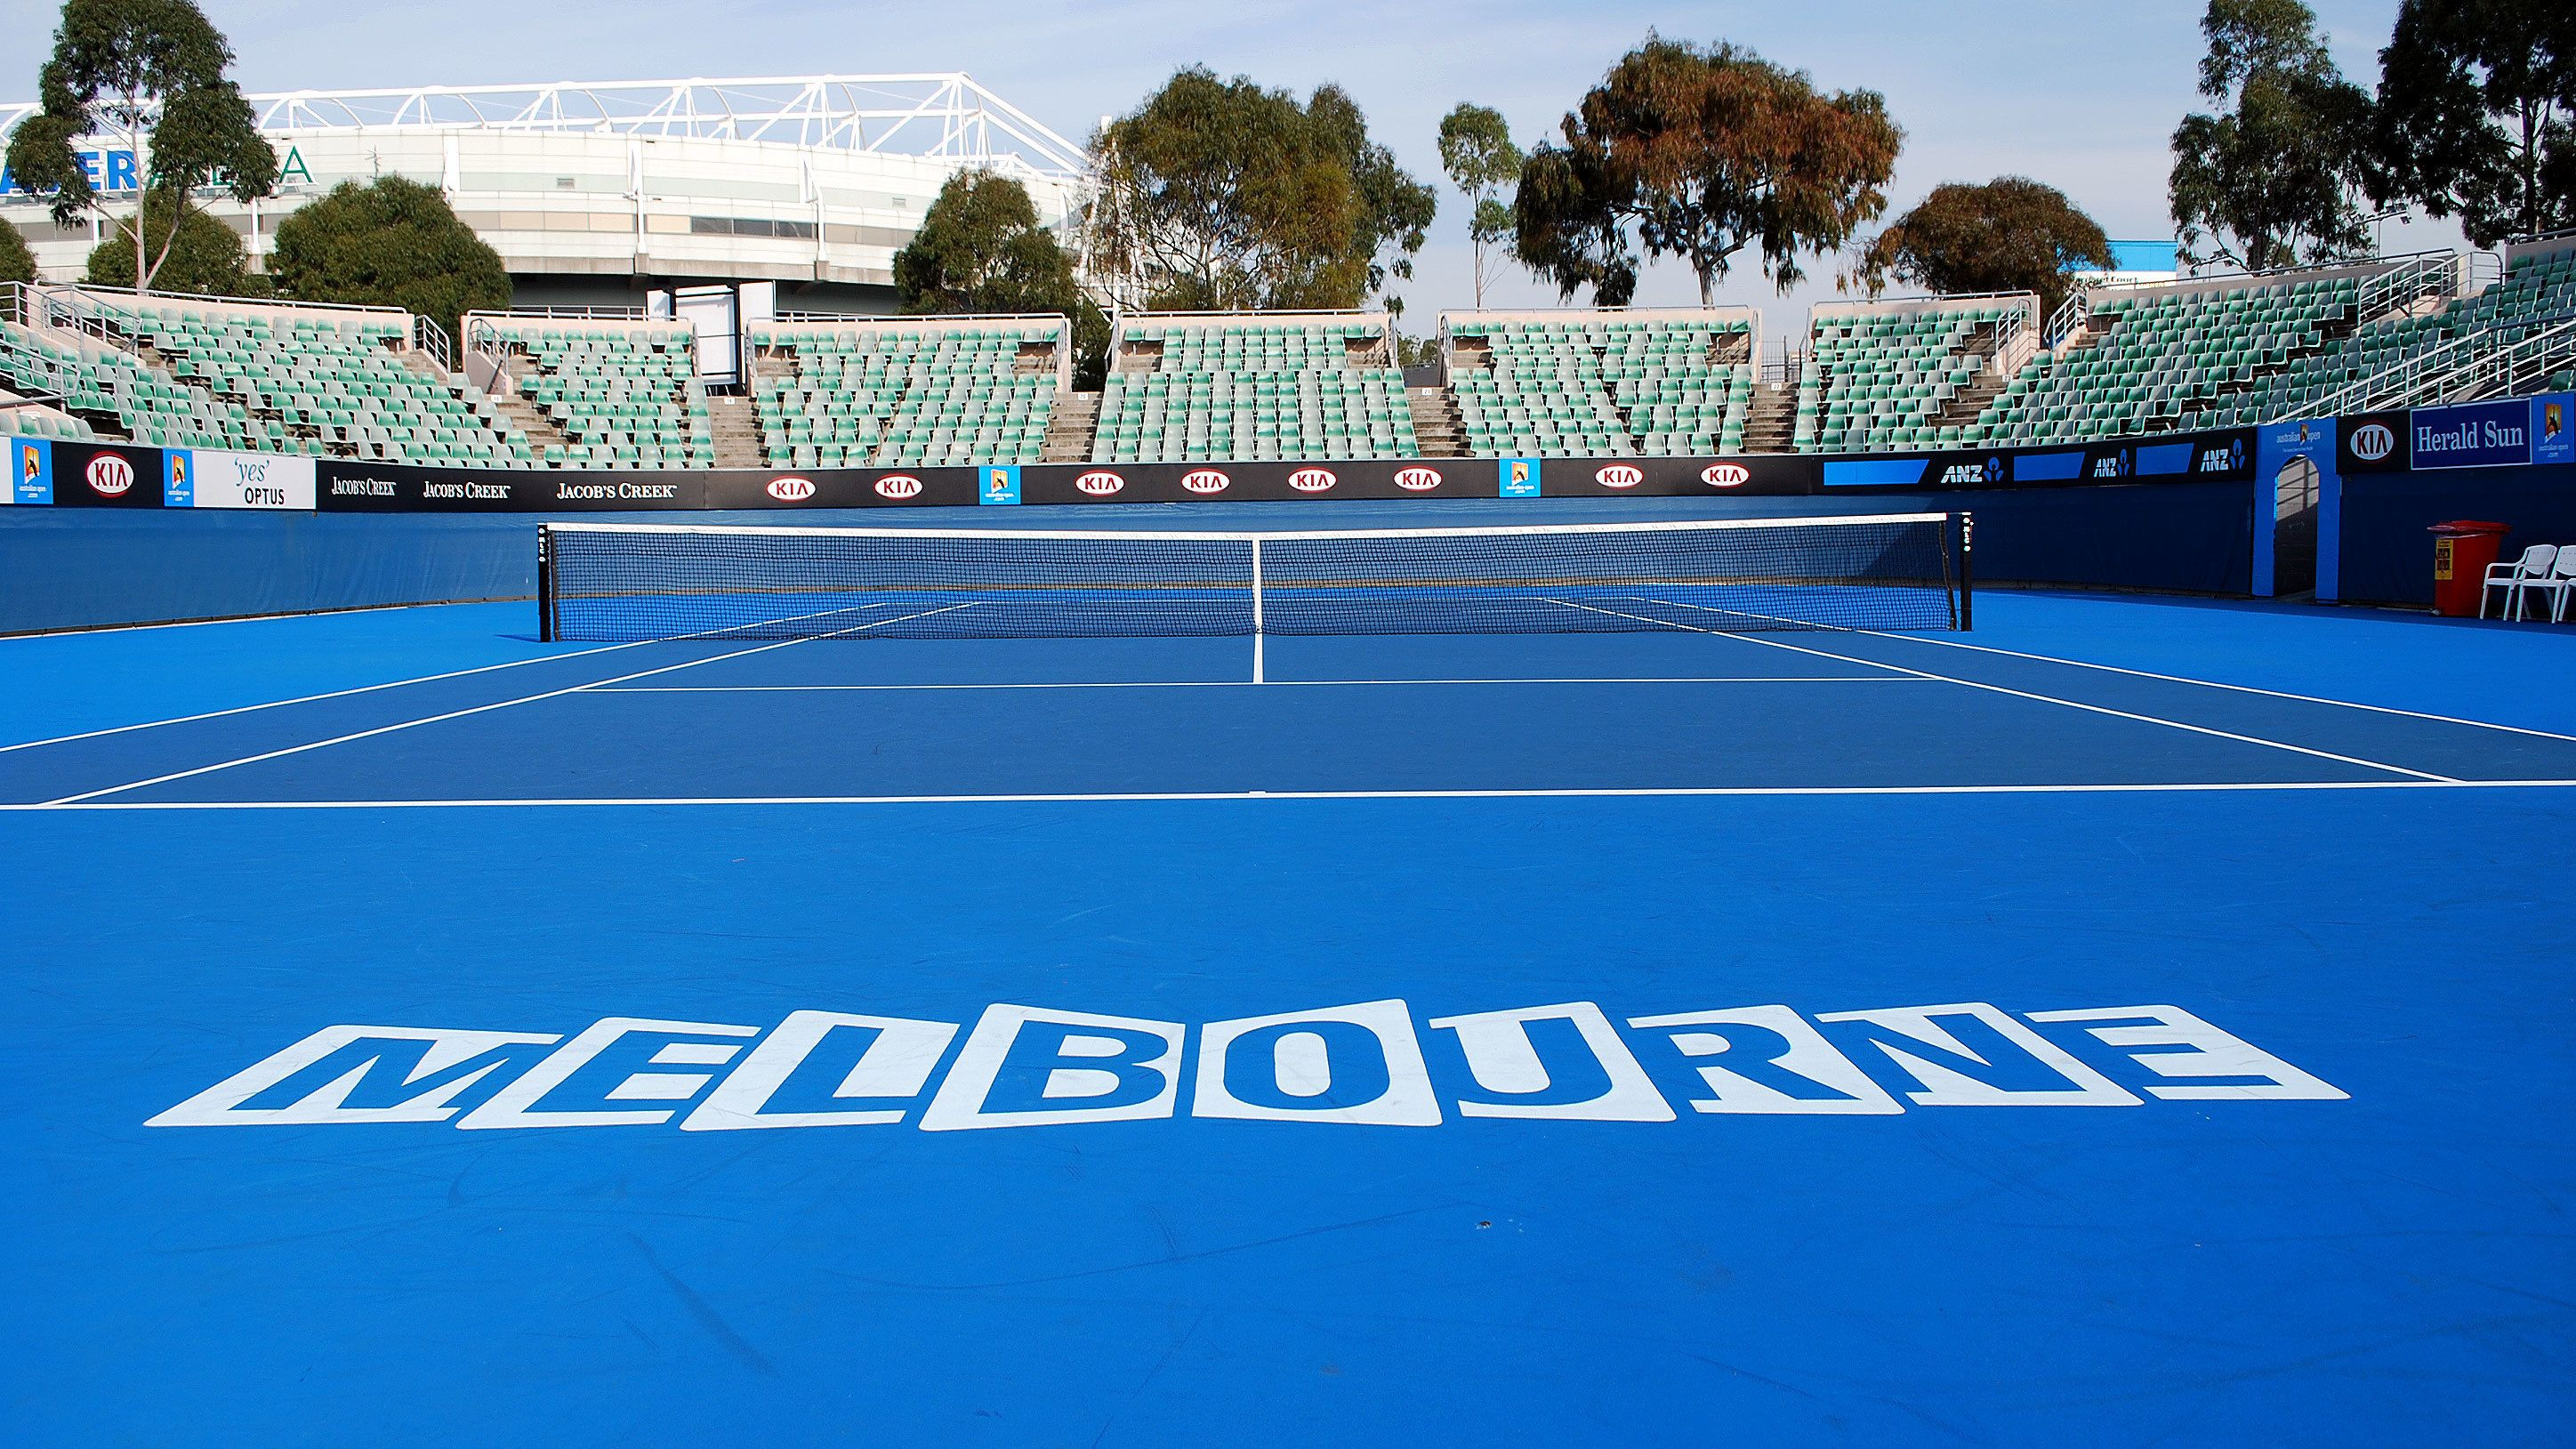 Visiting the tennis court in Melbourne